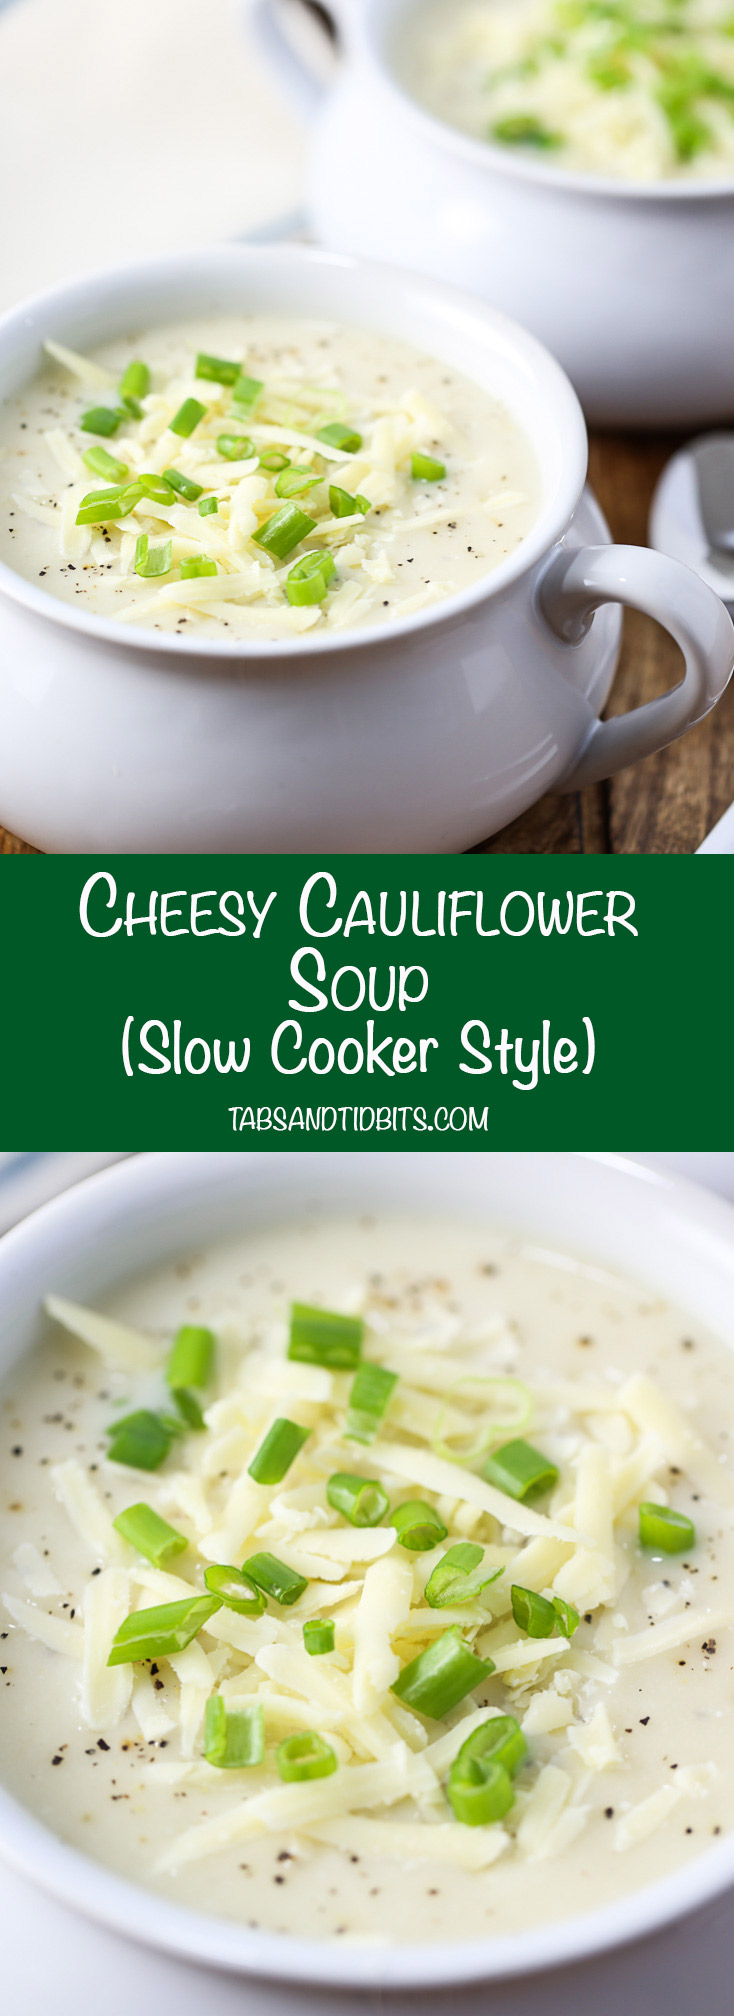 Cheesy Cauliflower Soup - This Cheesy Cauliflower Soup is a perfect low carb choice that delivers great flavor!